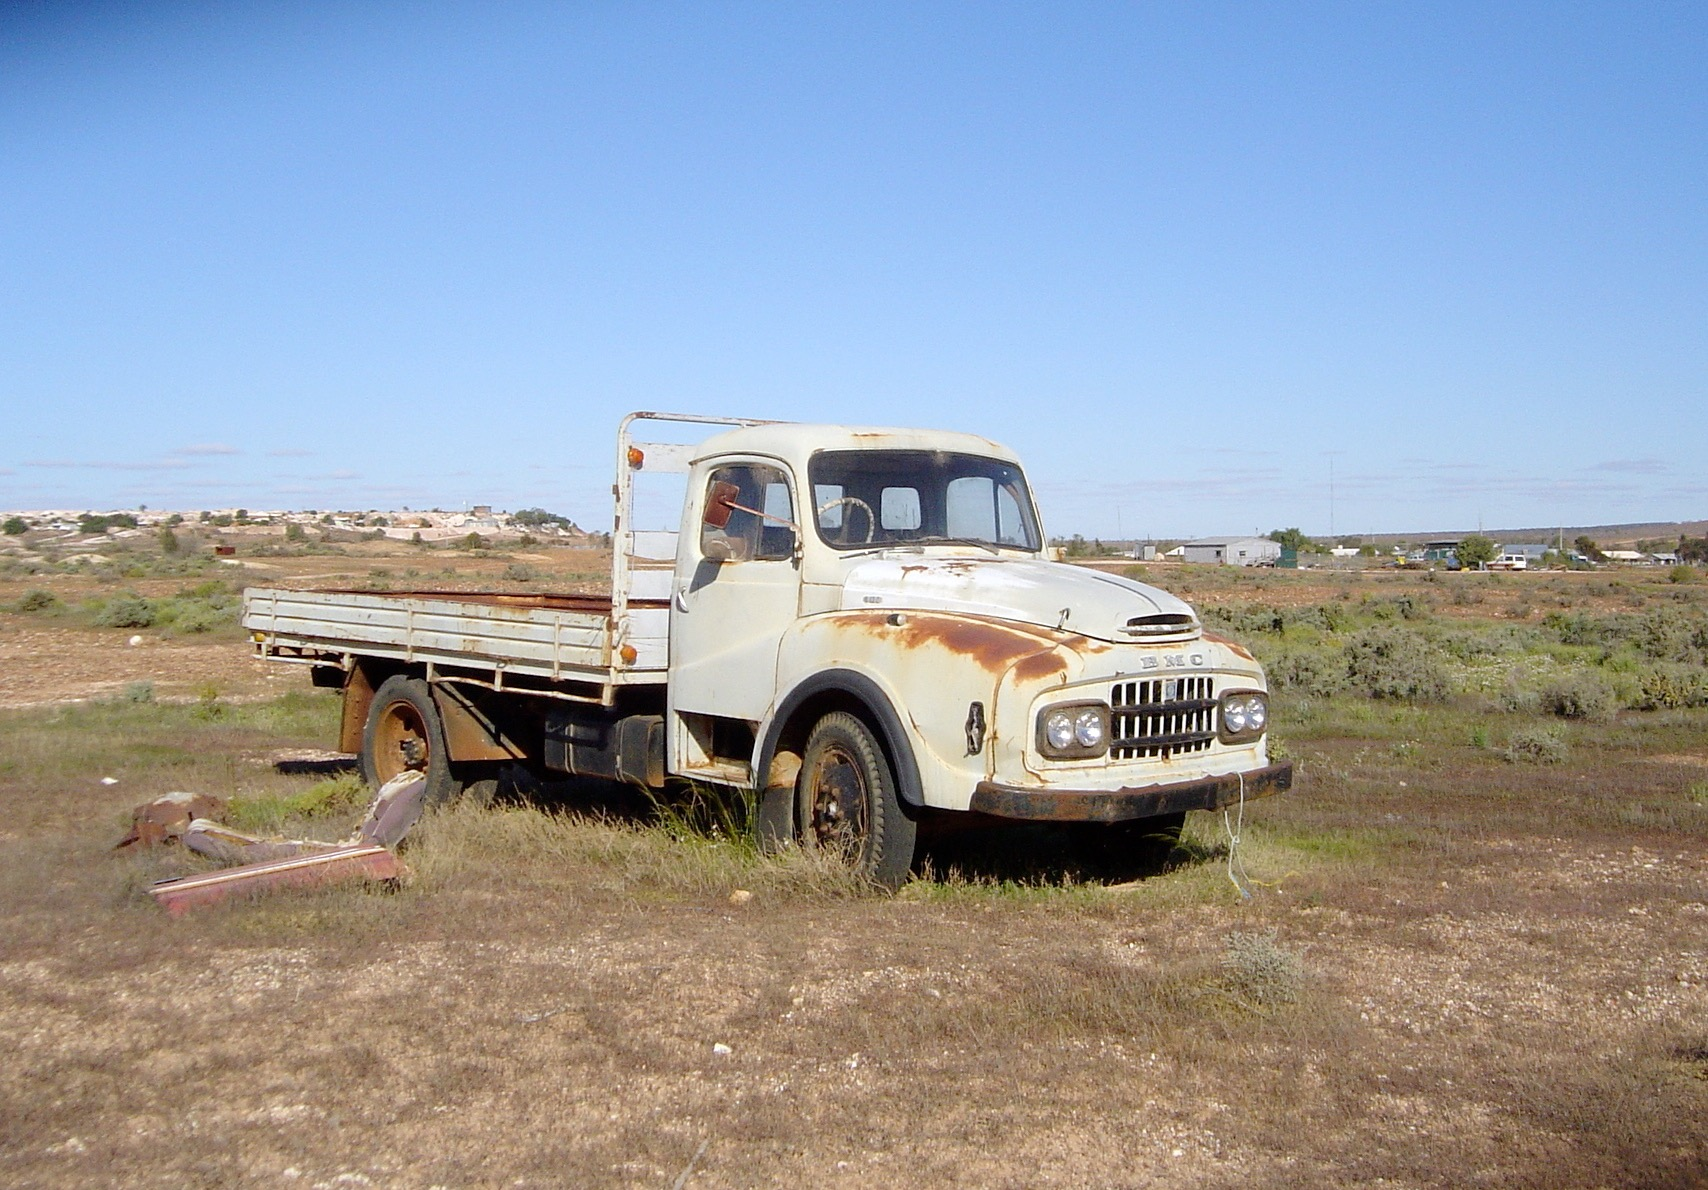 An Old Truck in Good Condition.